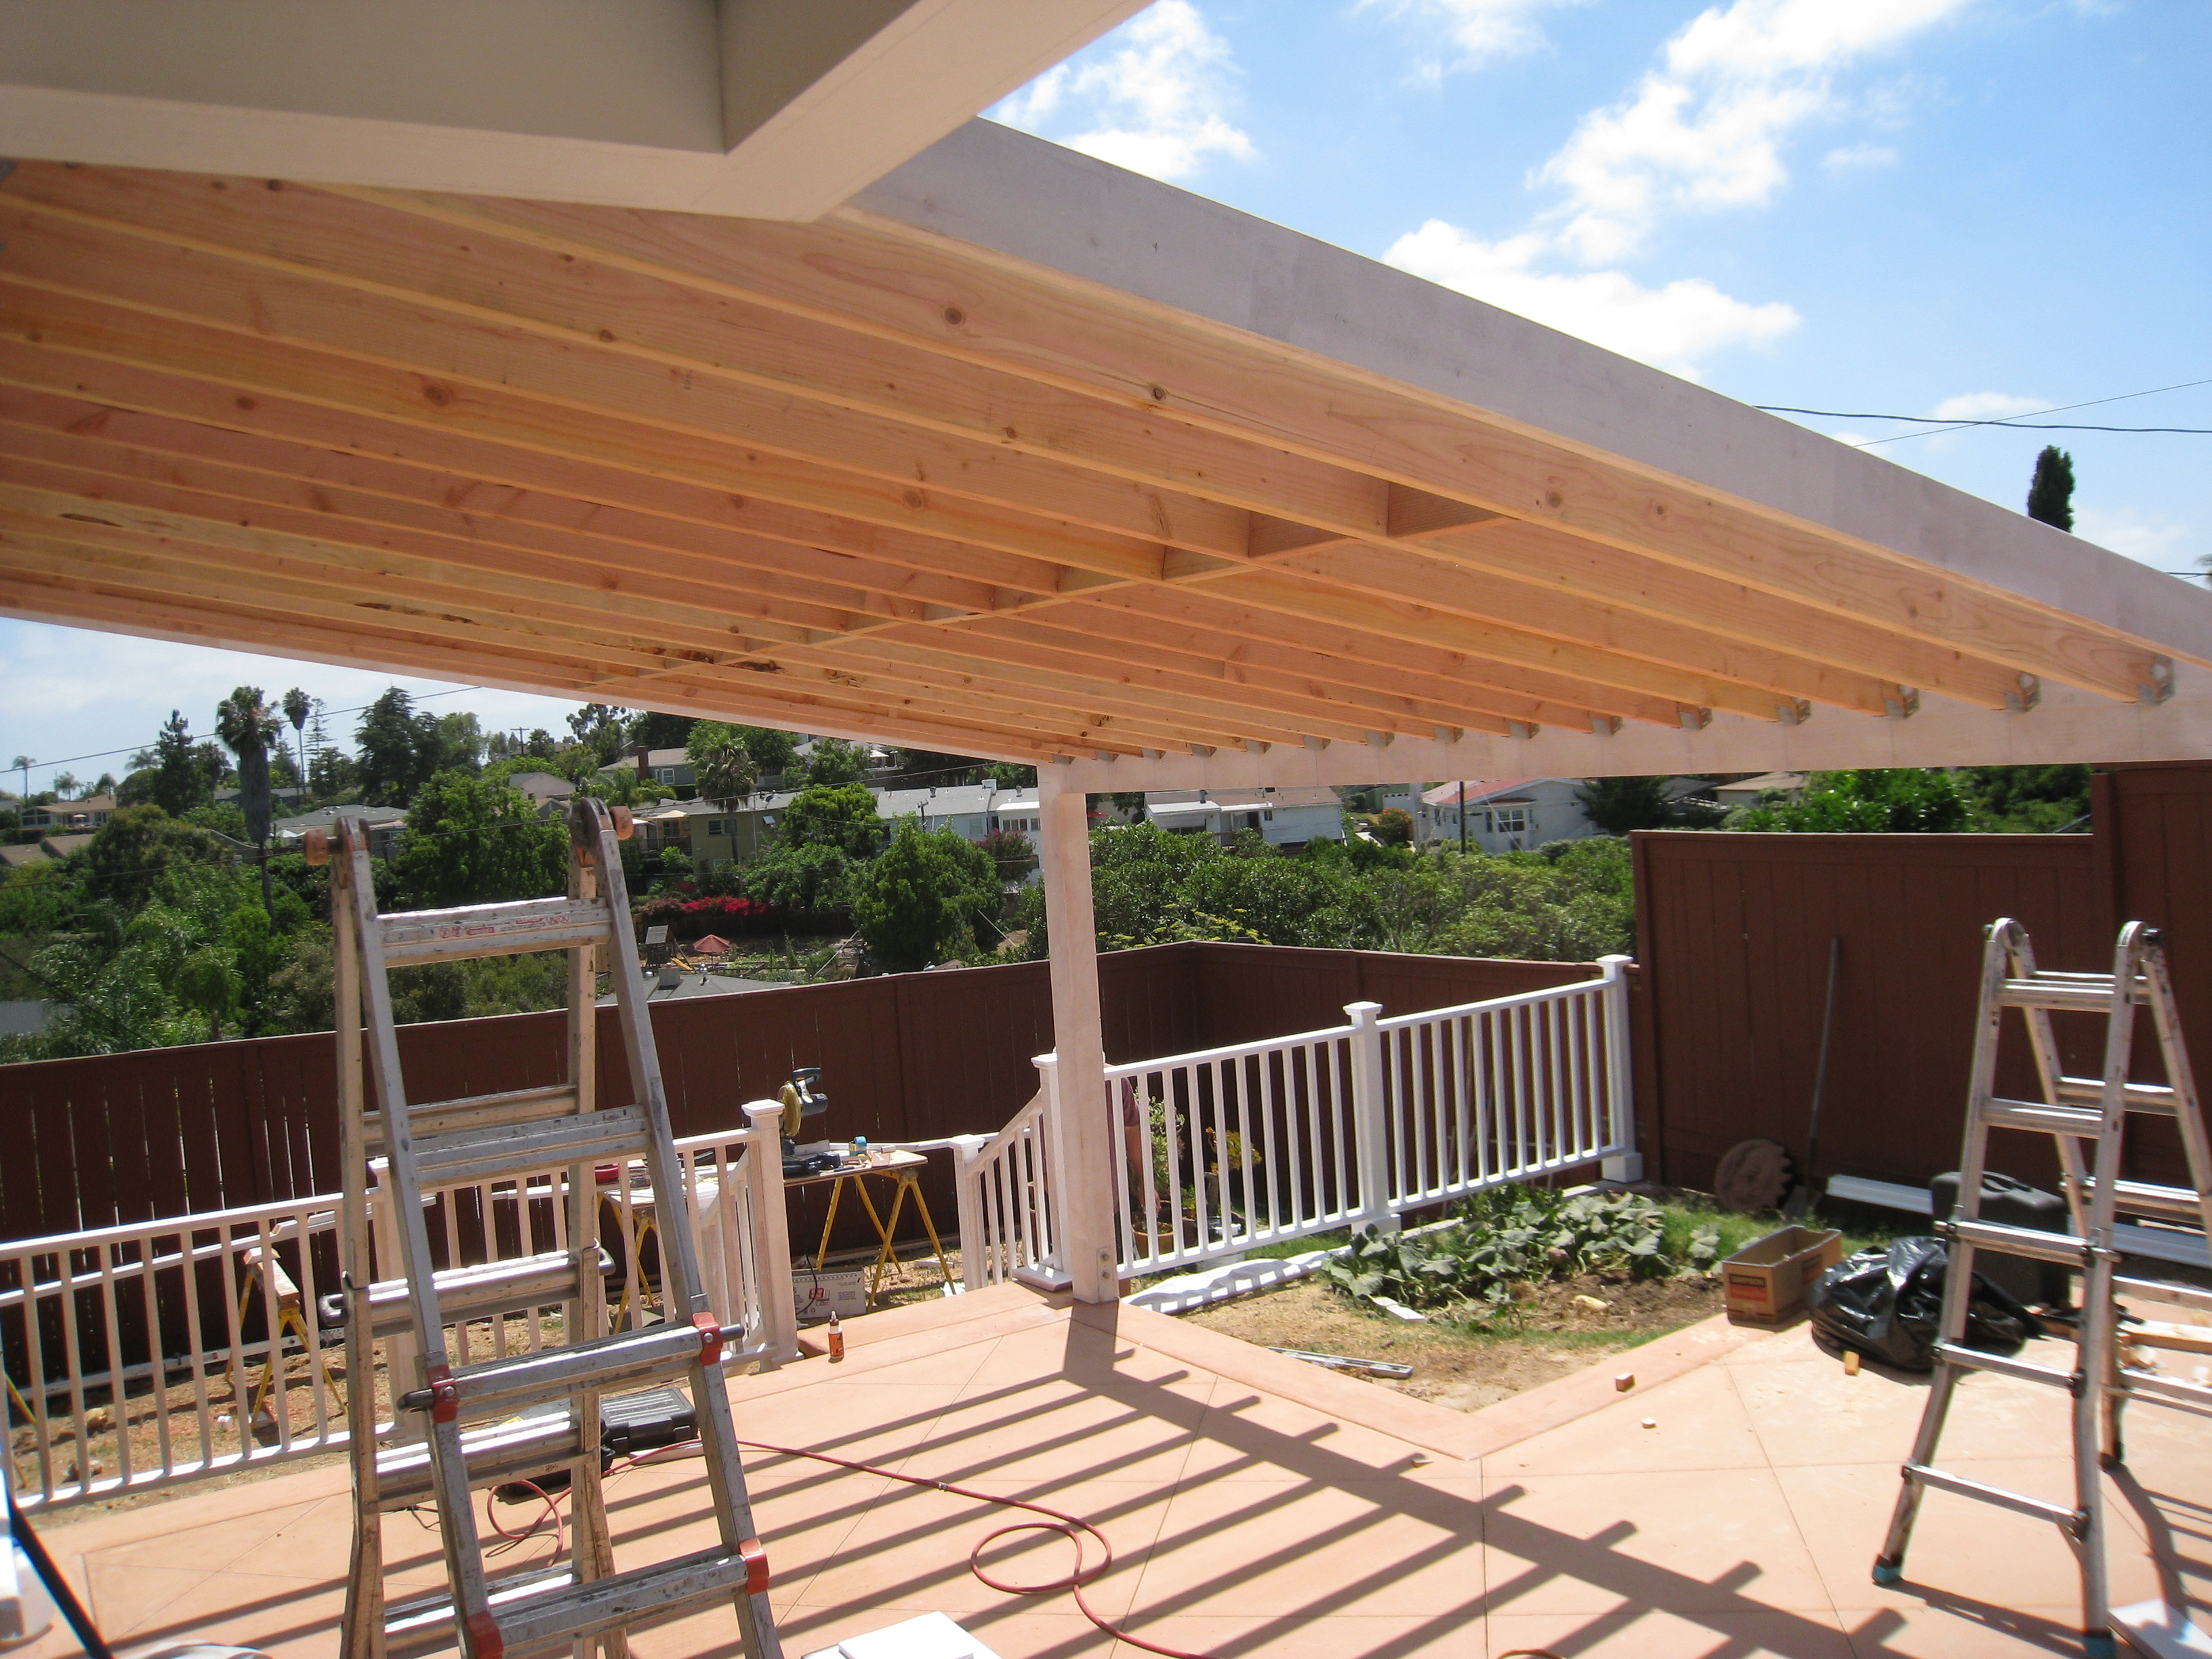 Main Matchup Wood Patio Covers Versus Aluminum Patio